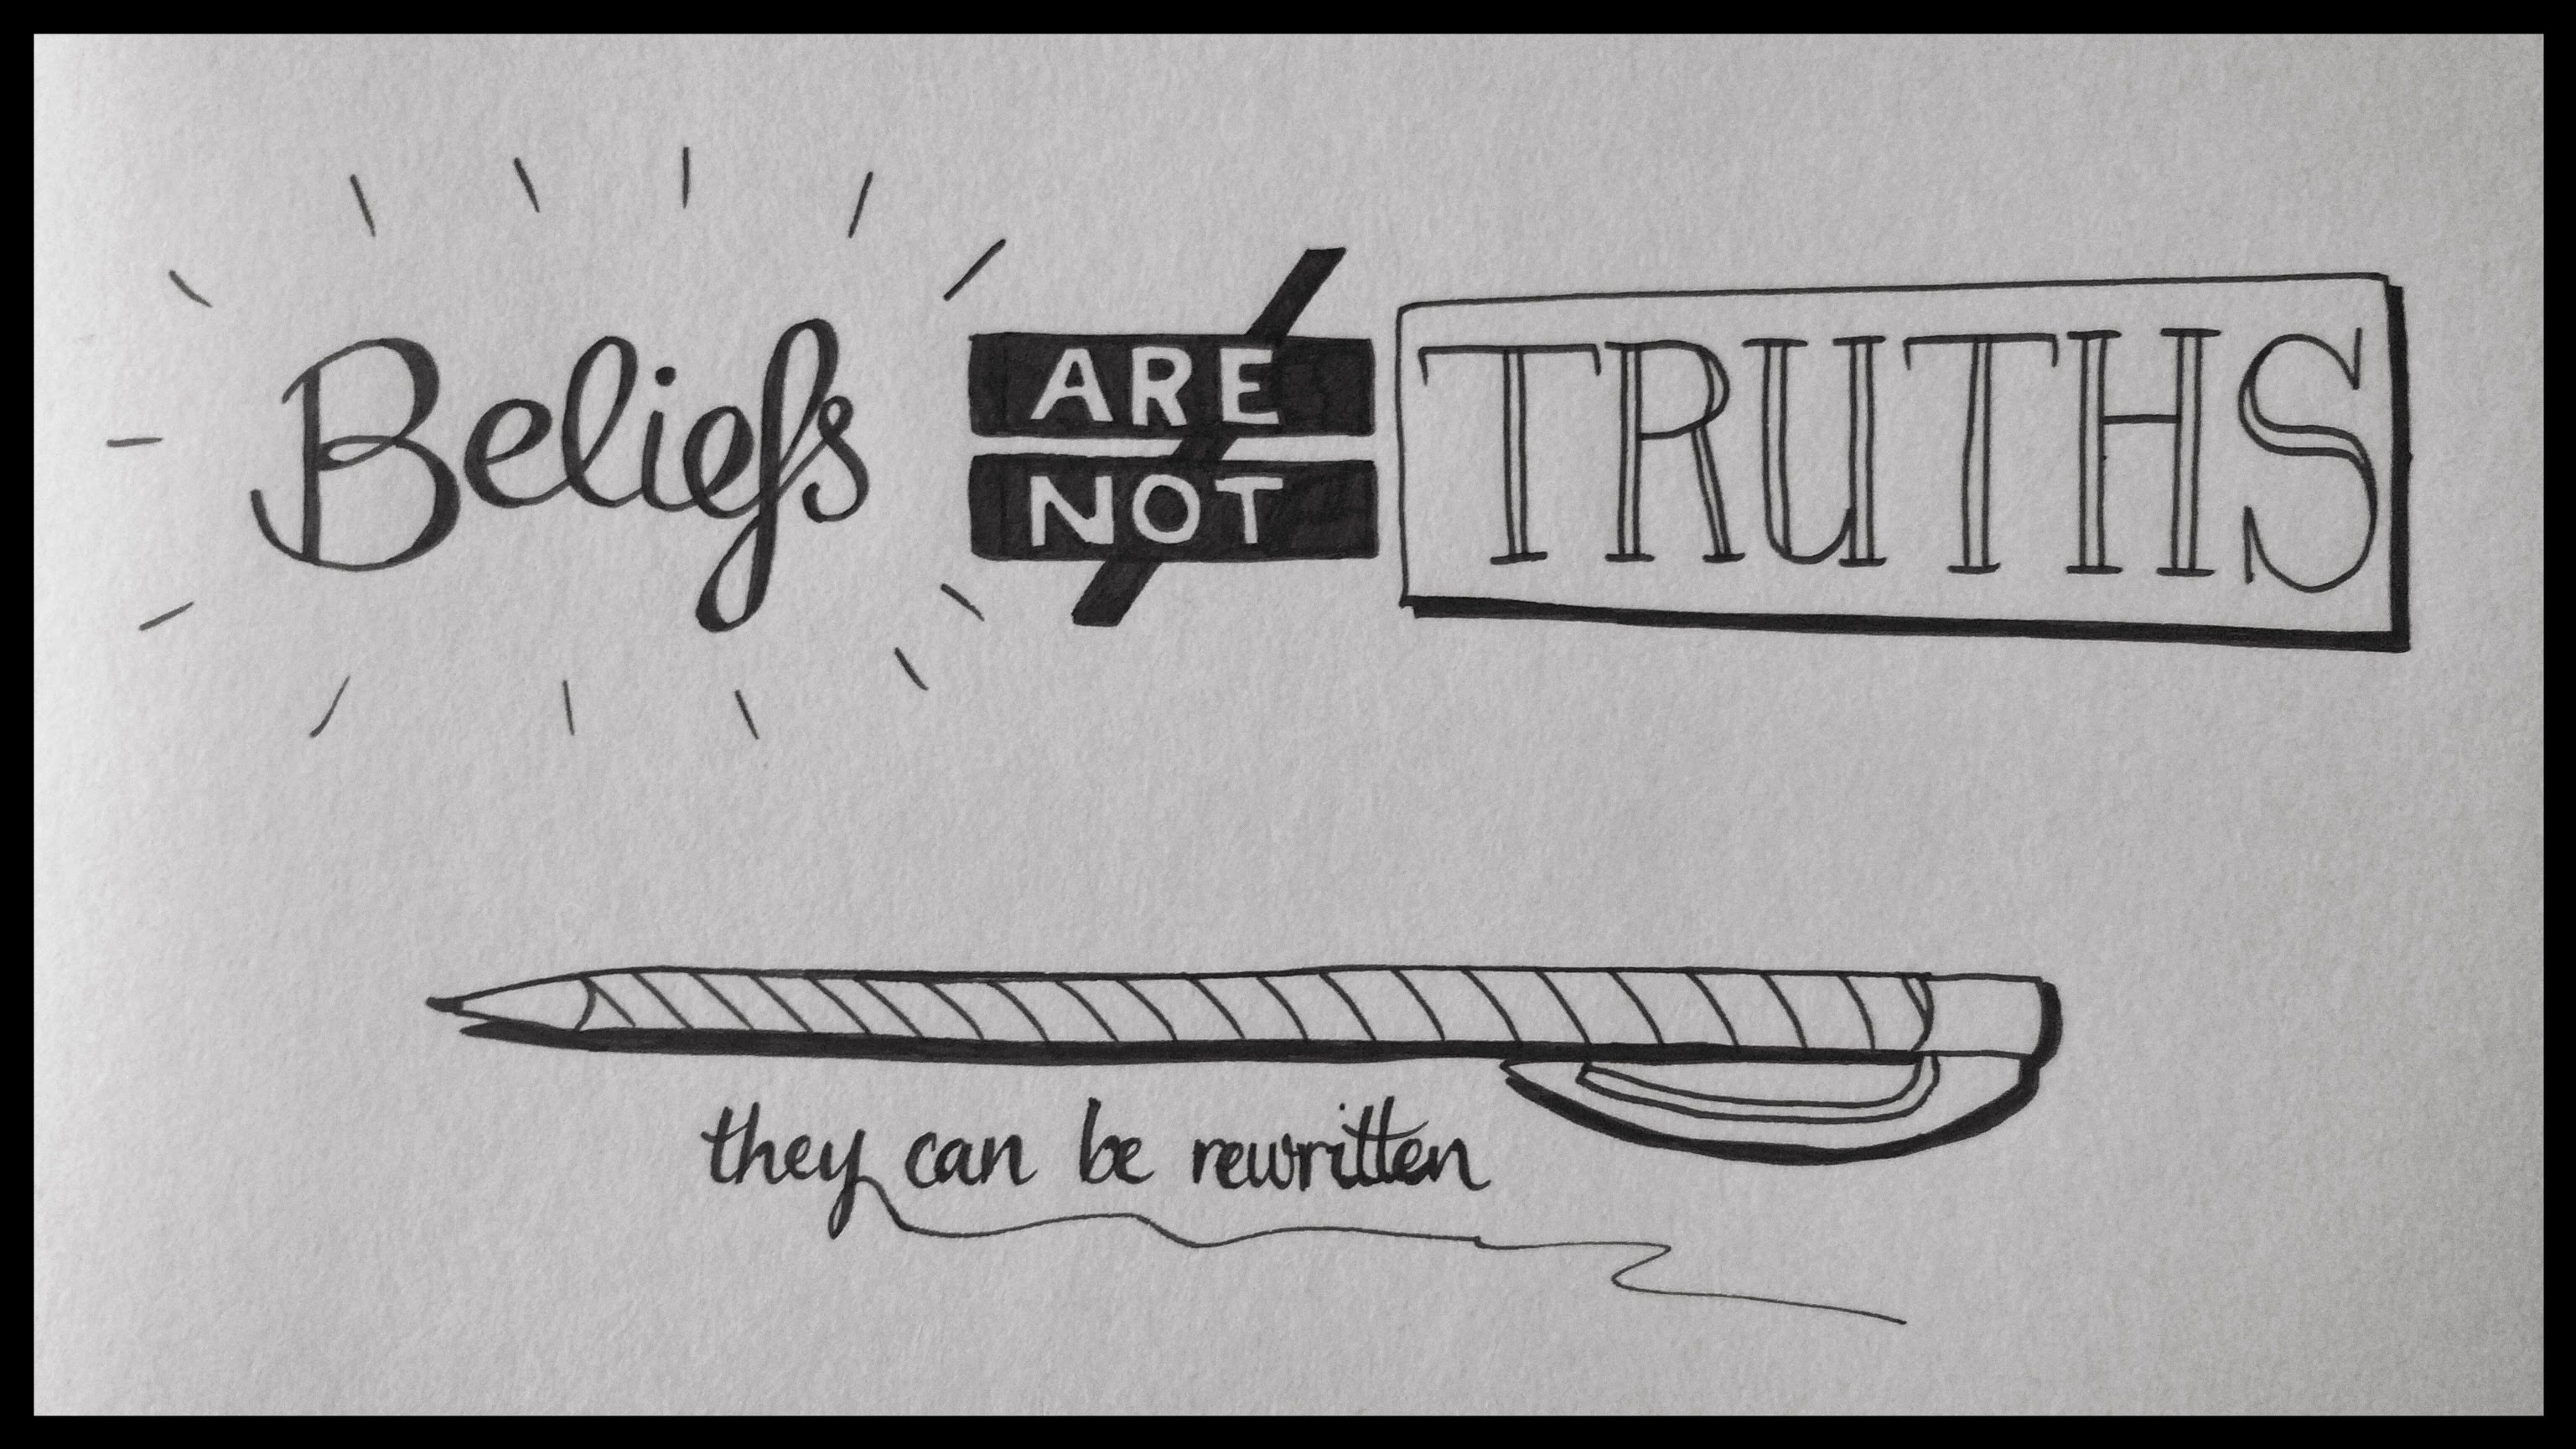 Beliefs are not truths. They can be rewritten.